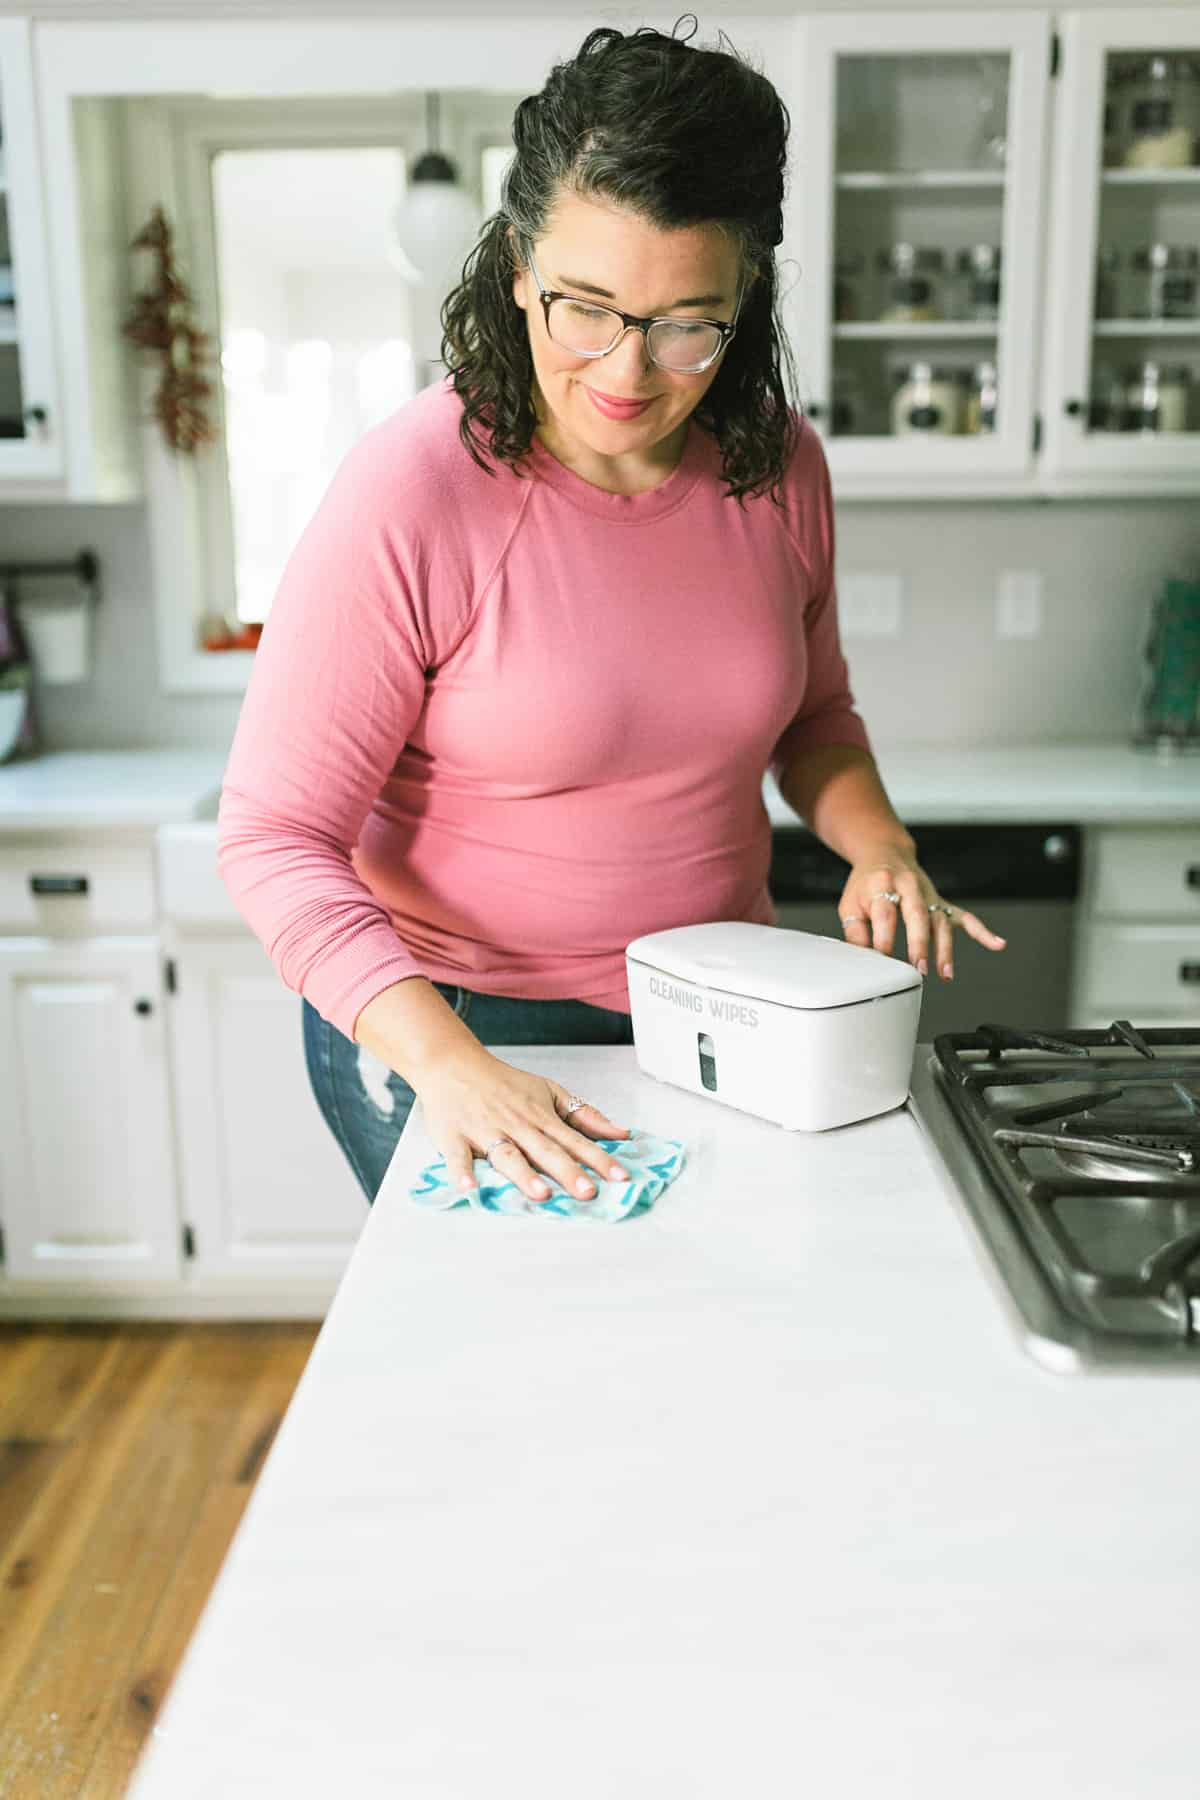 Woman using a DIY Disinfecting Wipe to clean a counter.